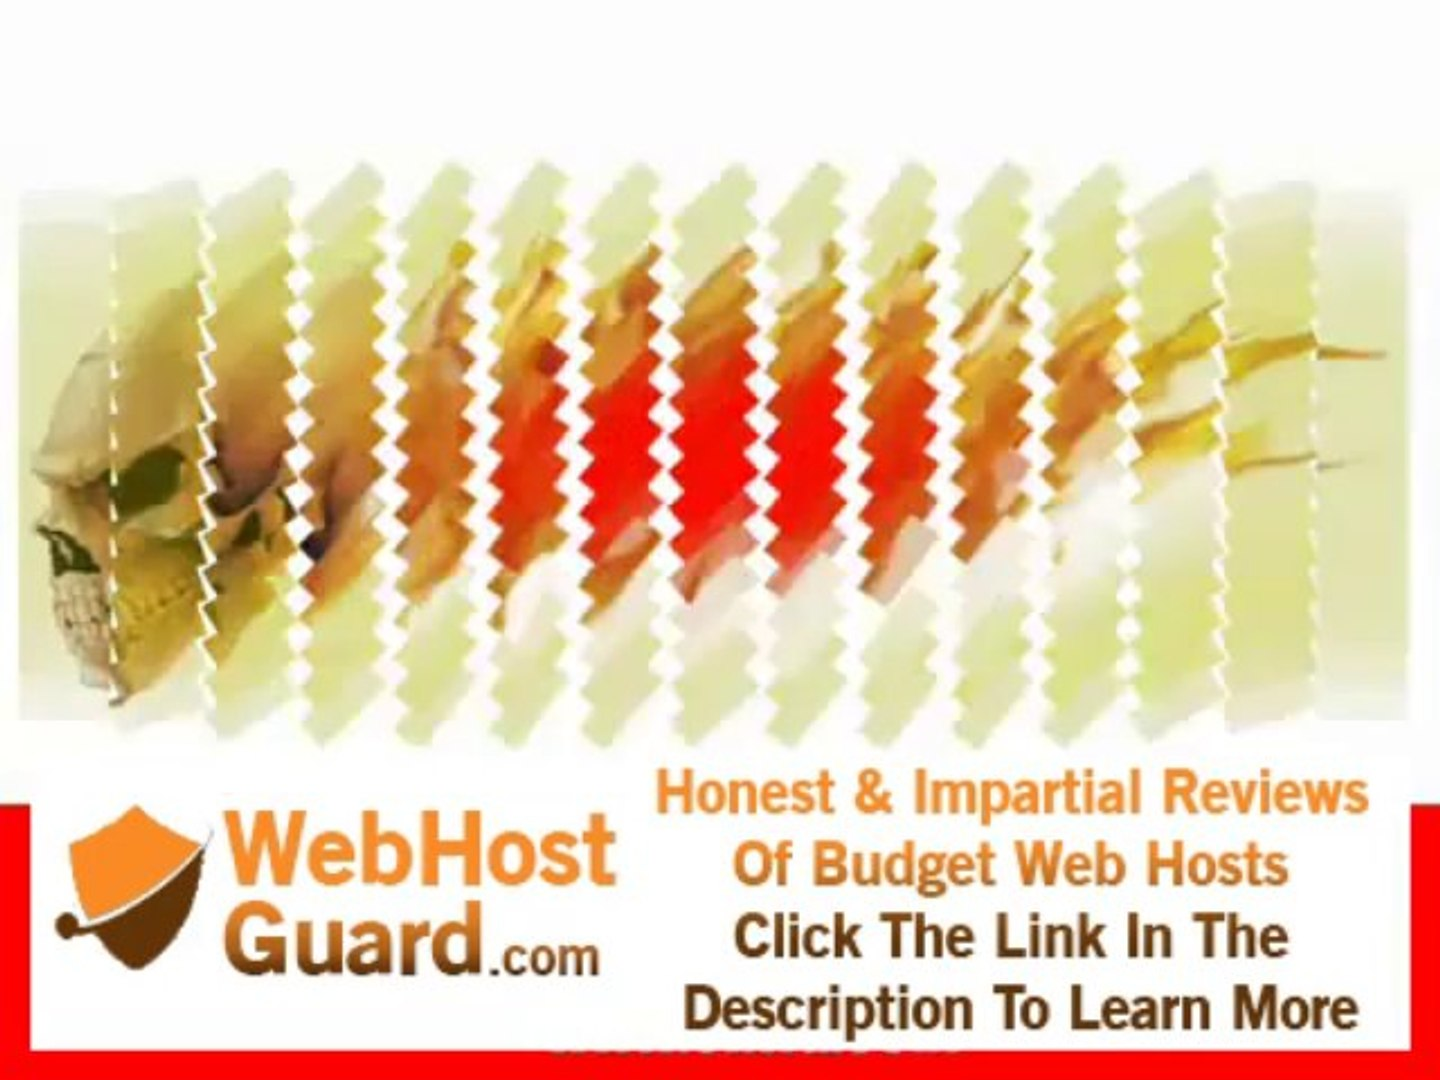 FREE web desgin, hosting for musicians,artists- www.ekwa.com